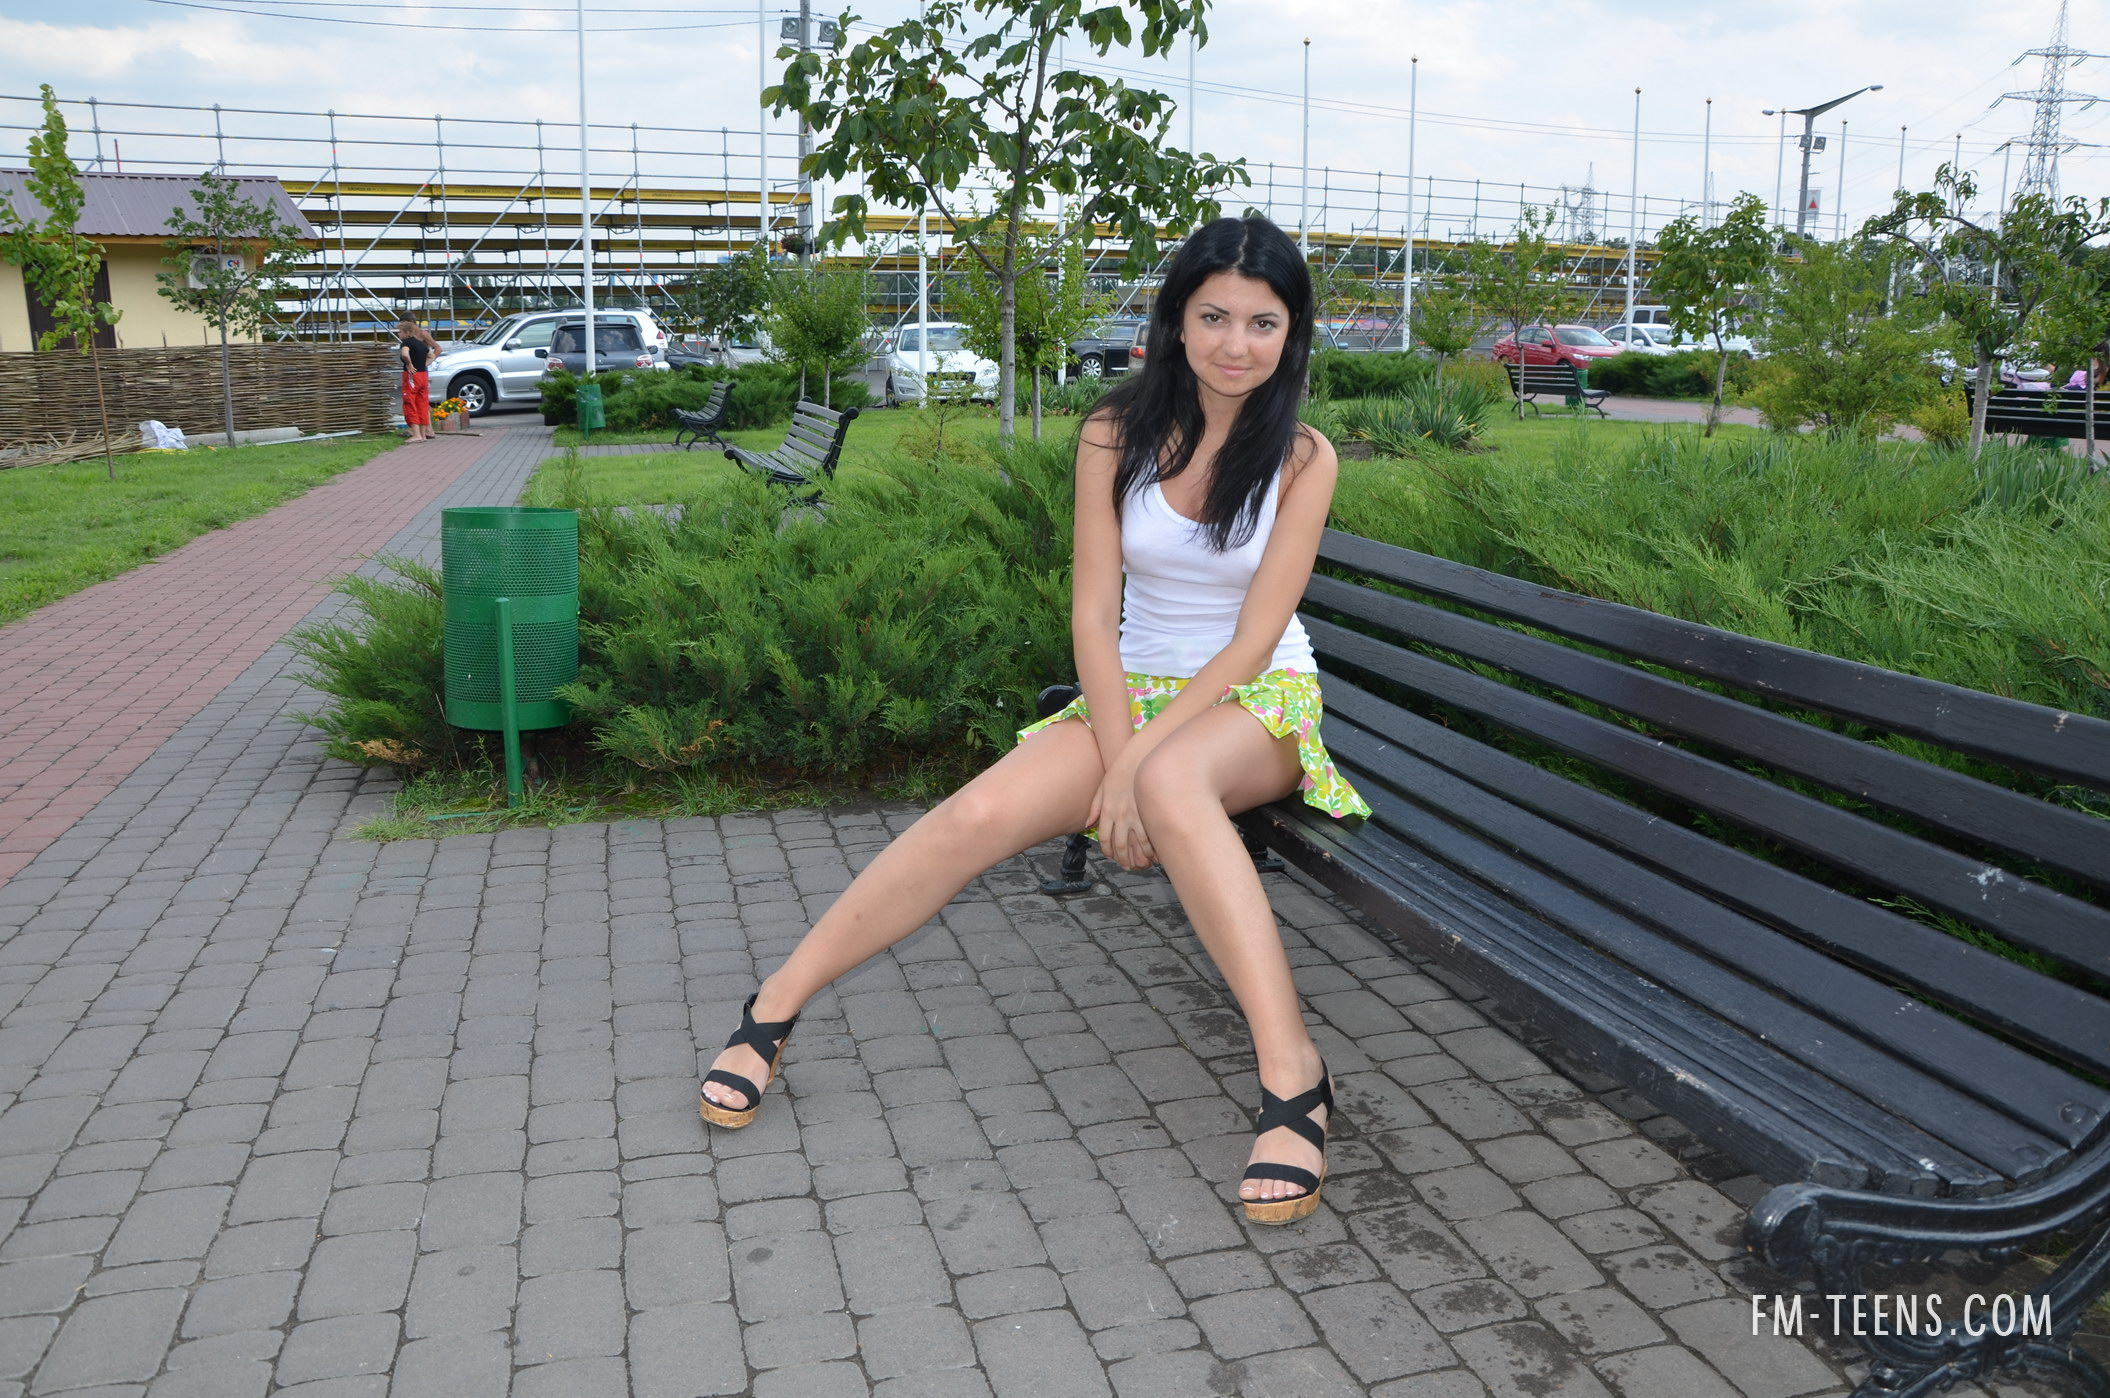 twinkle-young-brunette-nude-public-tits-russia-fm-teens-02